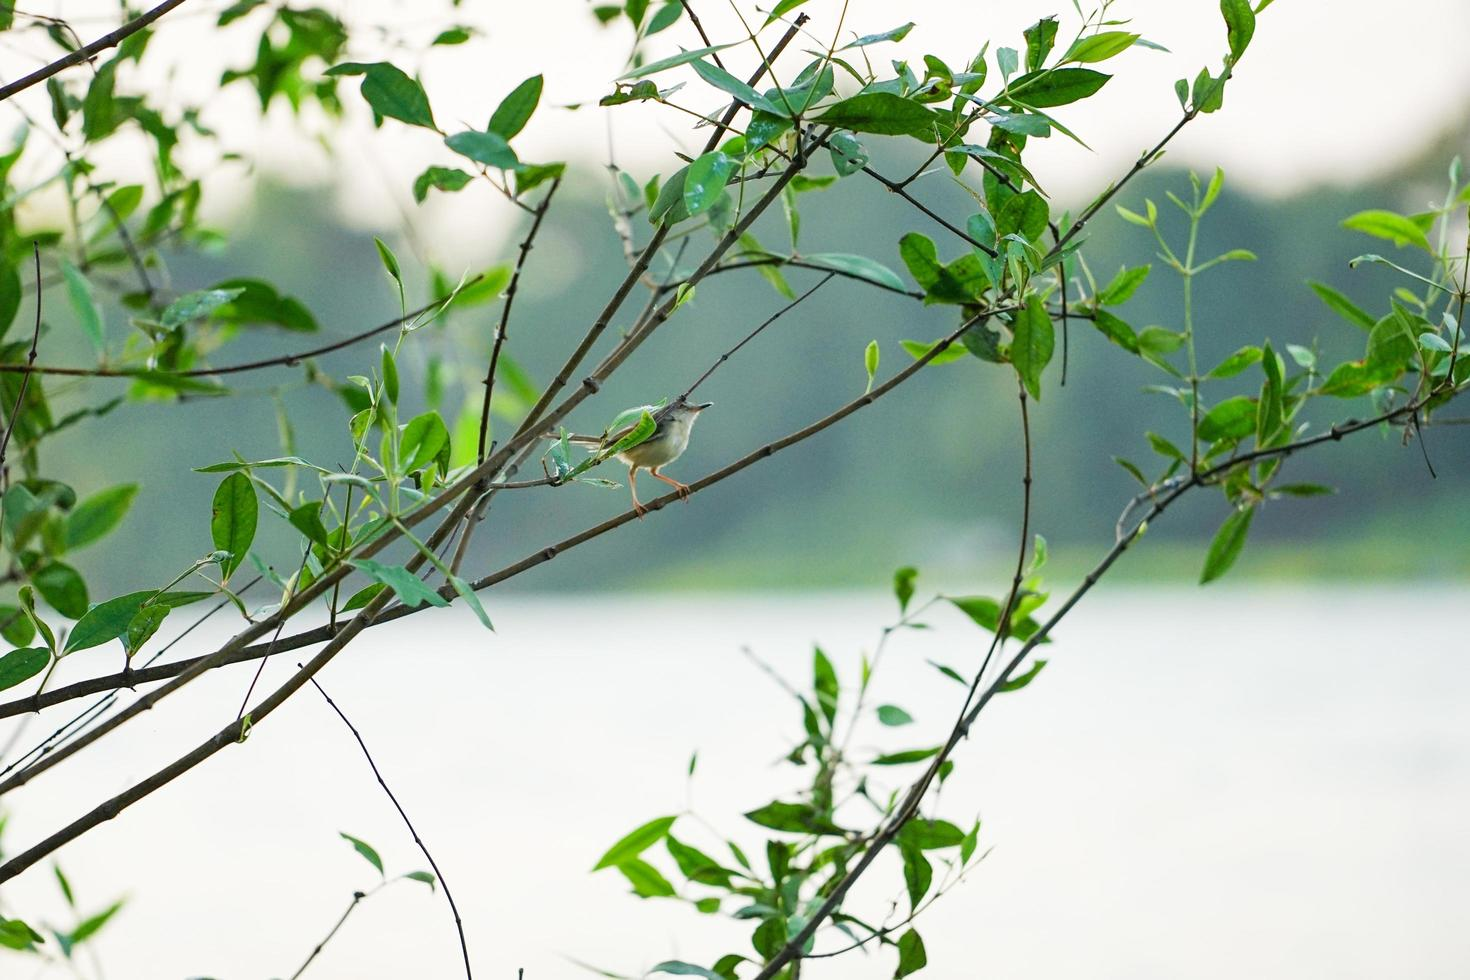 Little bird holding on the branch of tree with clear sky background photo